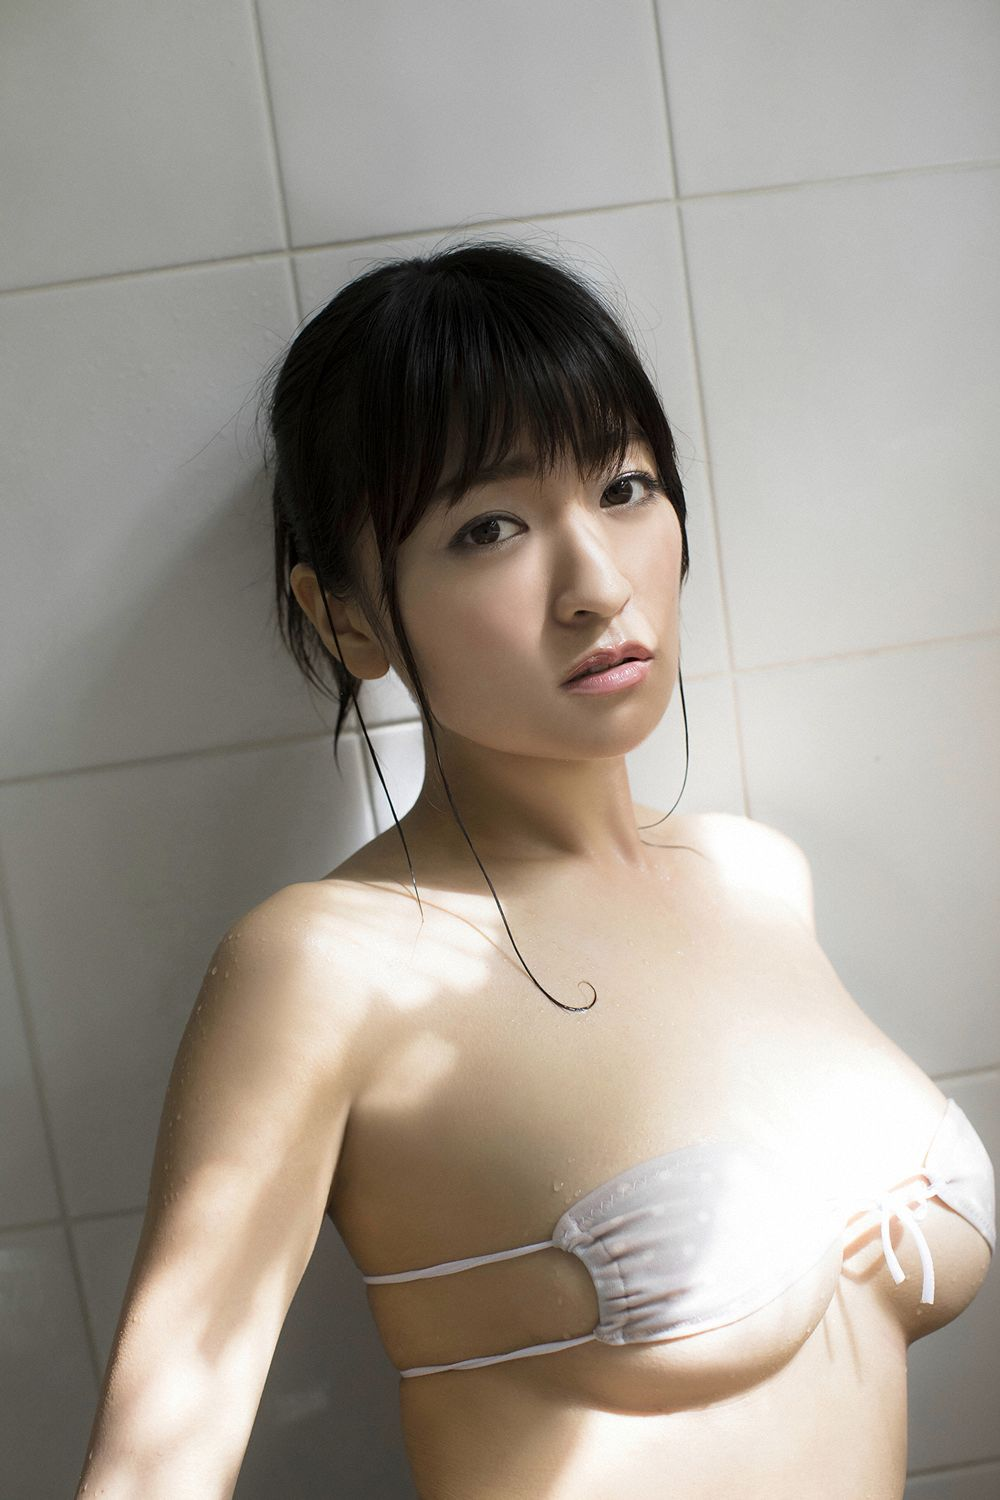 This is a girl with big tits who wants to be a popular girl089